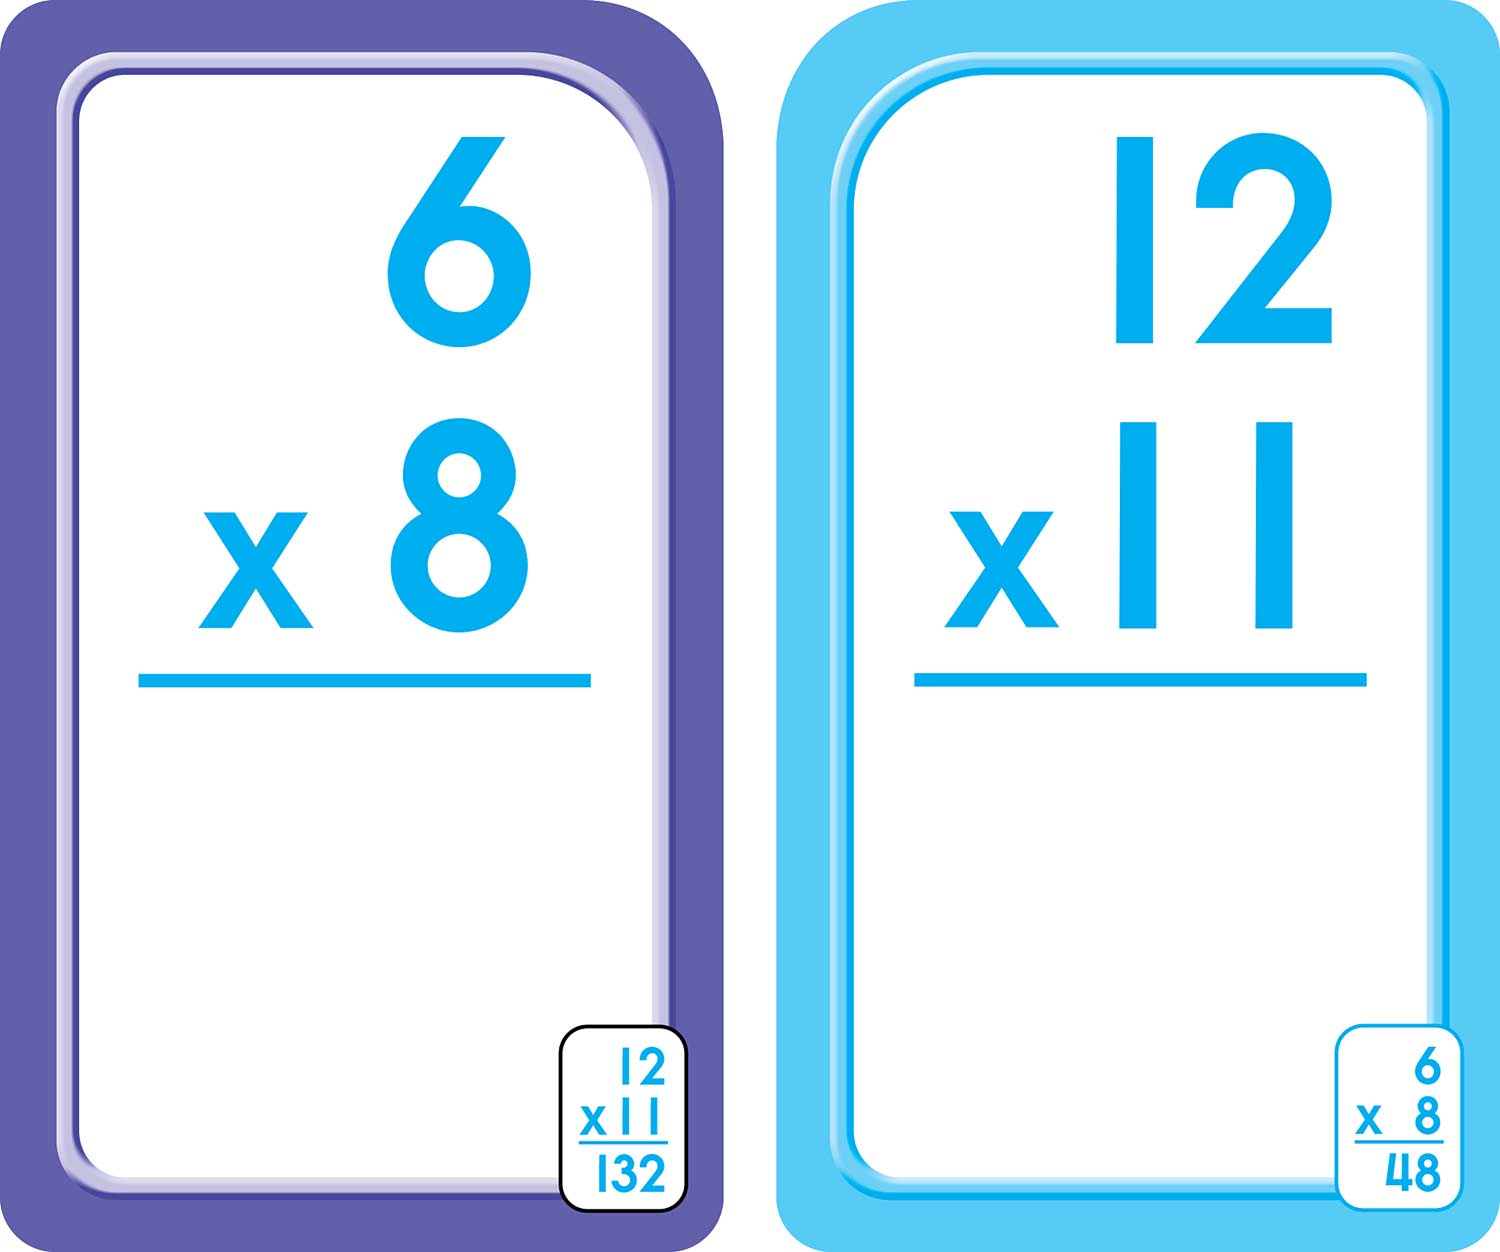 3Rd, 4Th And 5Th Grade - Multiplication Flash Cards 0-12 for Printable Multiplication Facts Cards